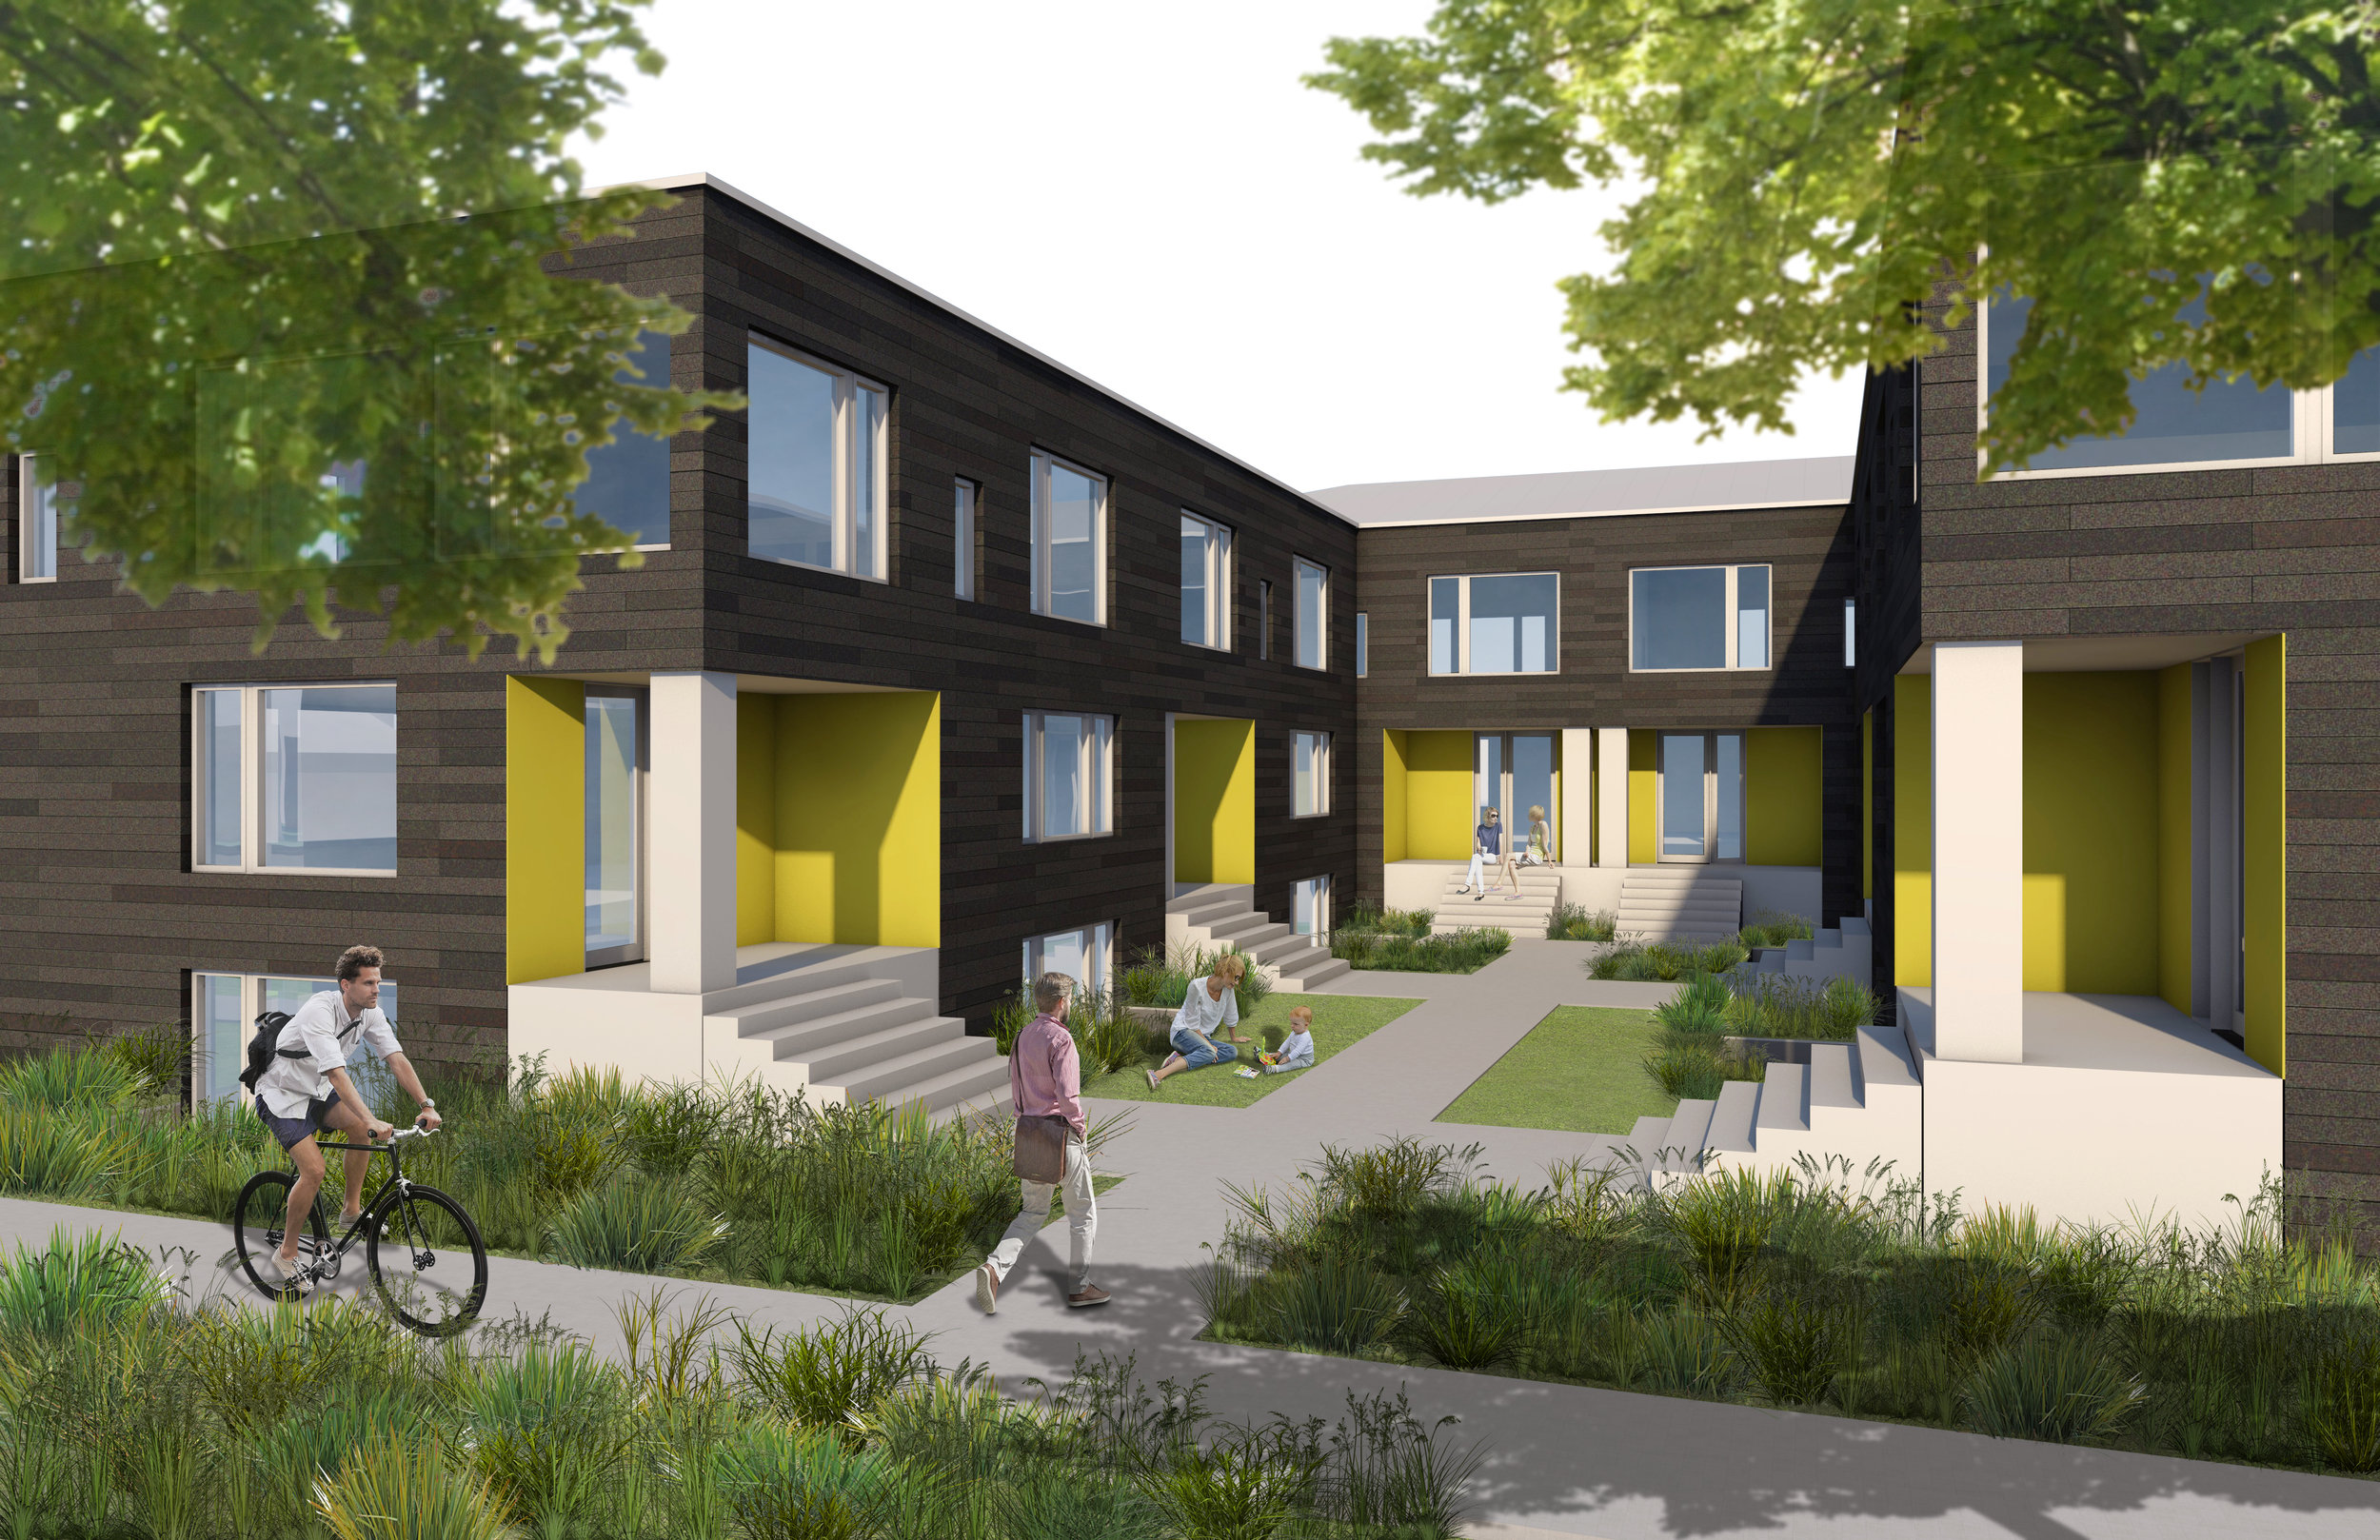 Small scale courtyard apartments like these would be allowed in urban centers and villages